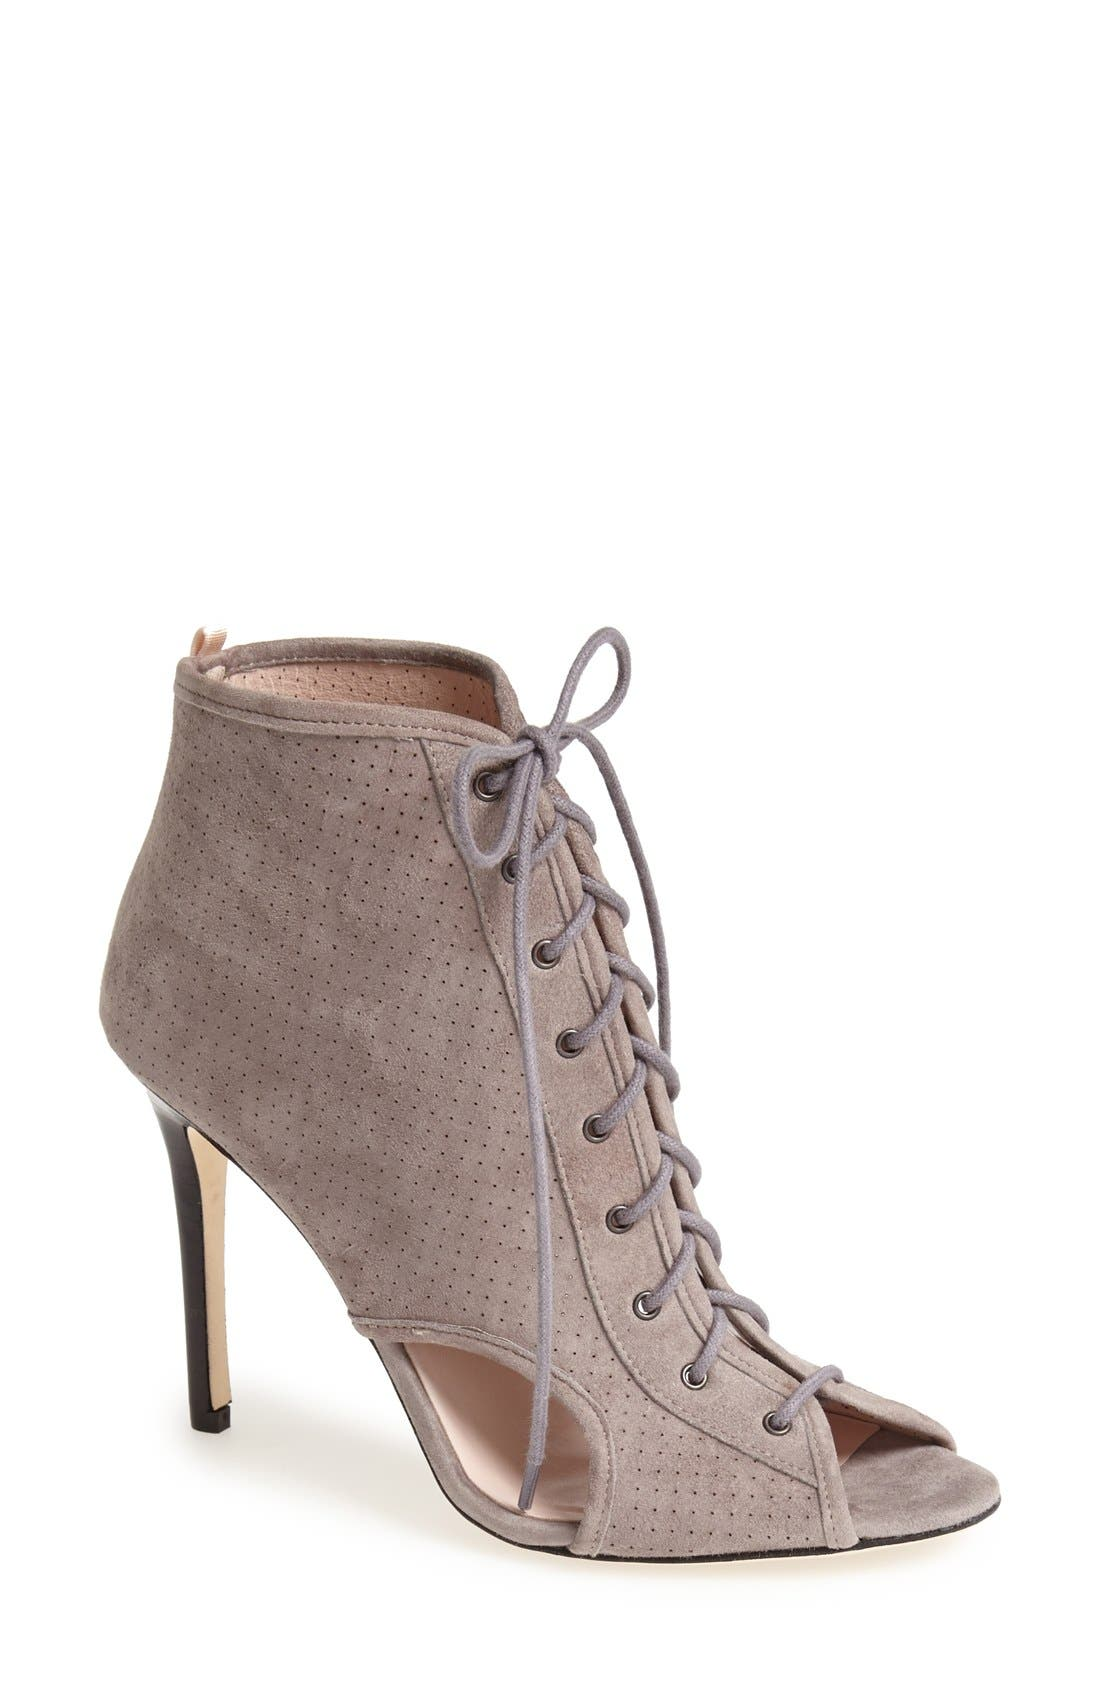 Alternate Image 1 Selected - SJP 'Marci' Lace-Up Suede Bootie (Women)